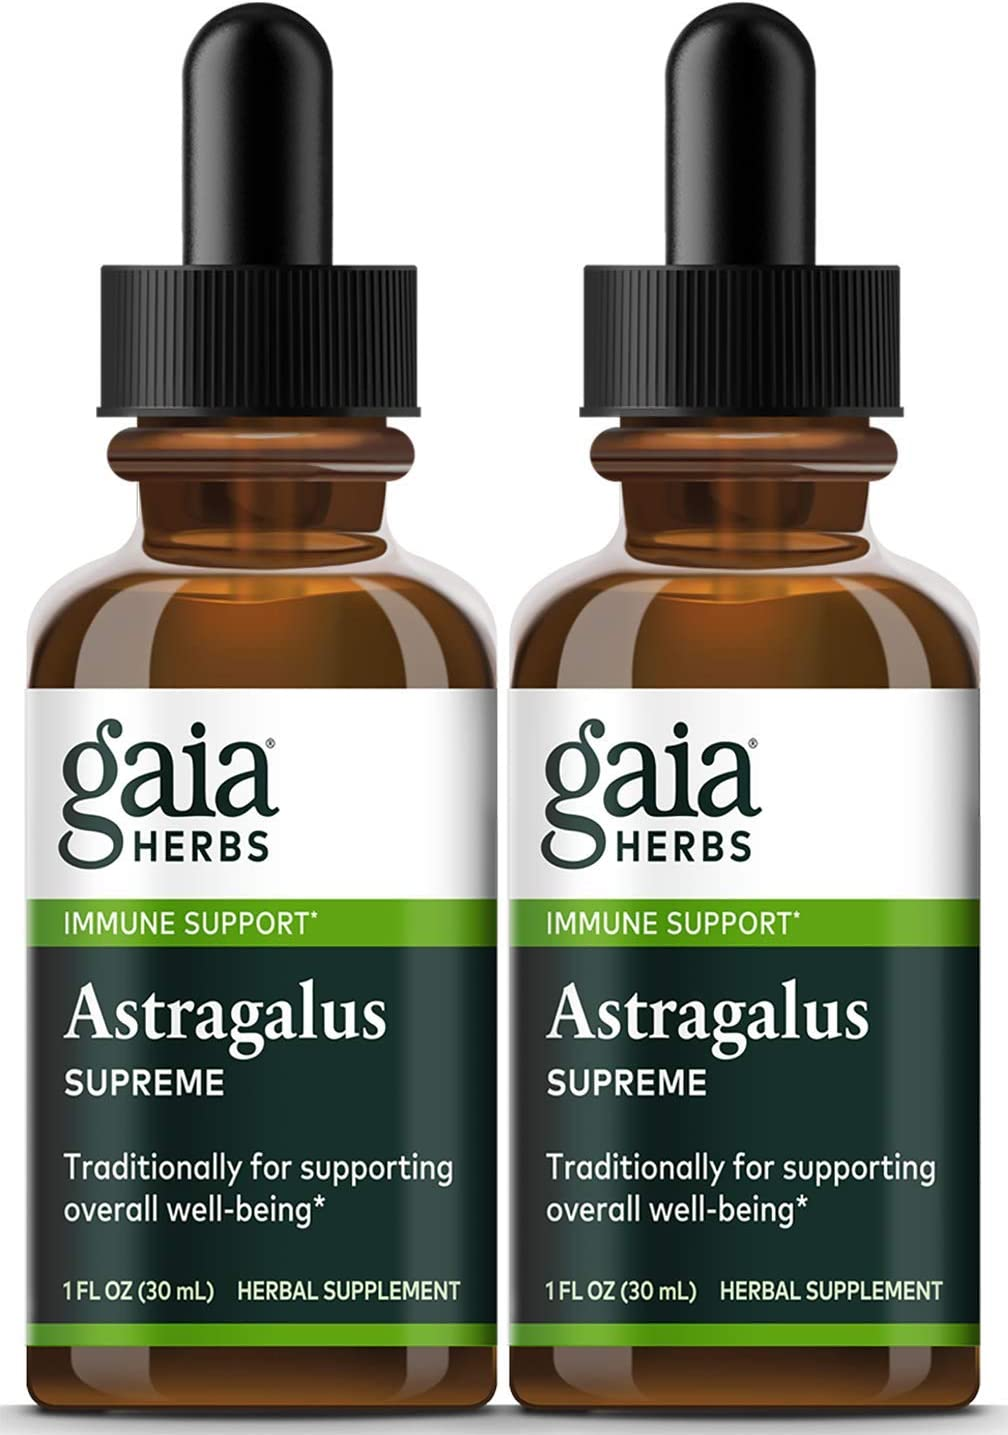 Gaia Herbs Astragalus Supreme, Liquid Herbal Extract, 1 Ounce Pack of 2 – Deep Immune Support and Stress Resistance, with Antioxidants